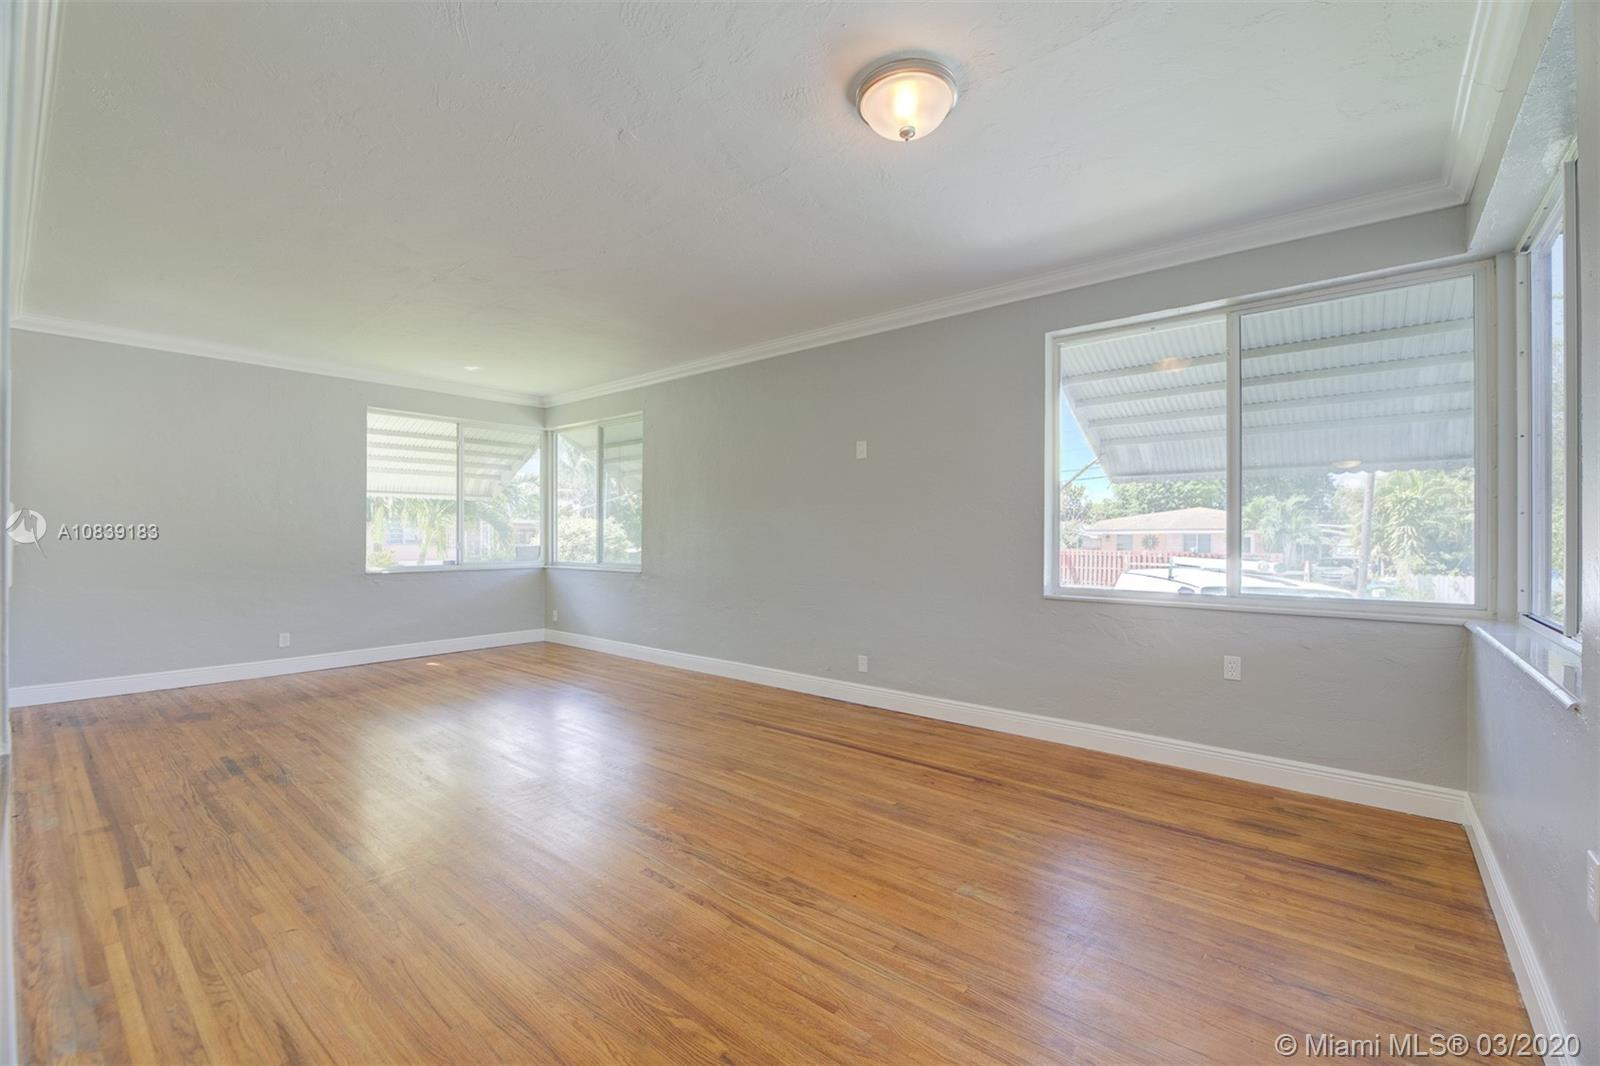 1101 NE 111th St, Miami, Florida 33161, 5 Bedrooms Bedrooms, ,4 BathroomsBathrooms,Residential,For Sale,1101 NE 111th St,A10839183